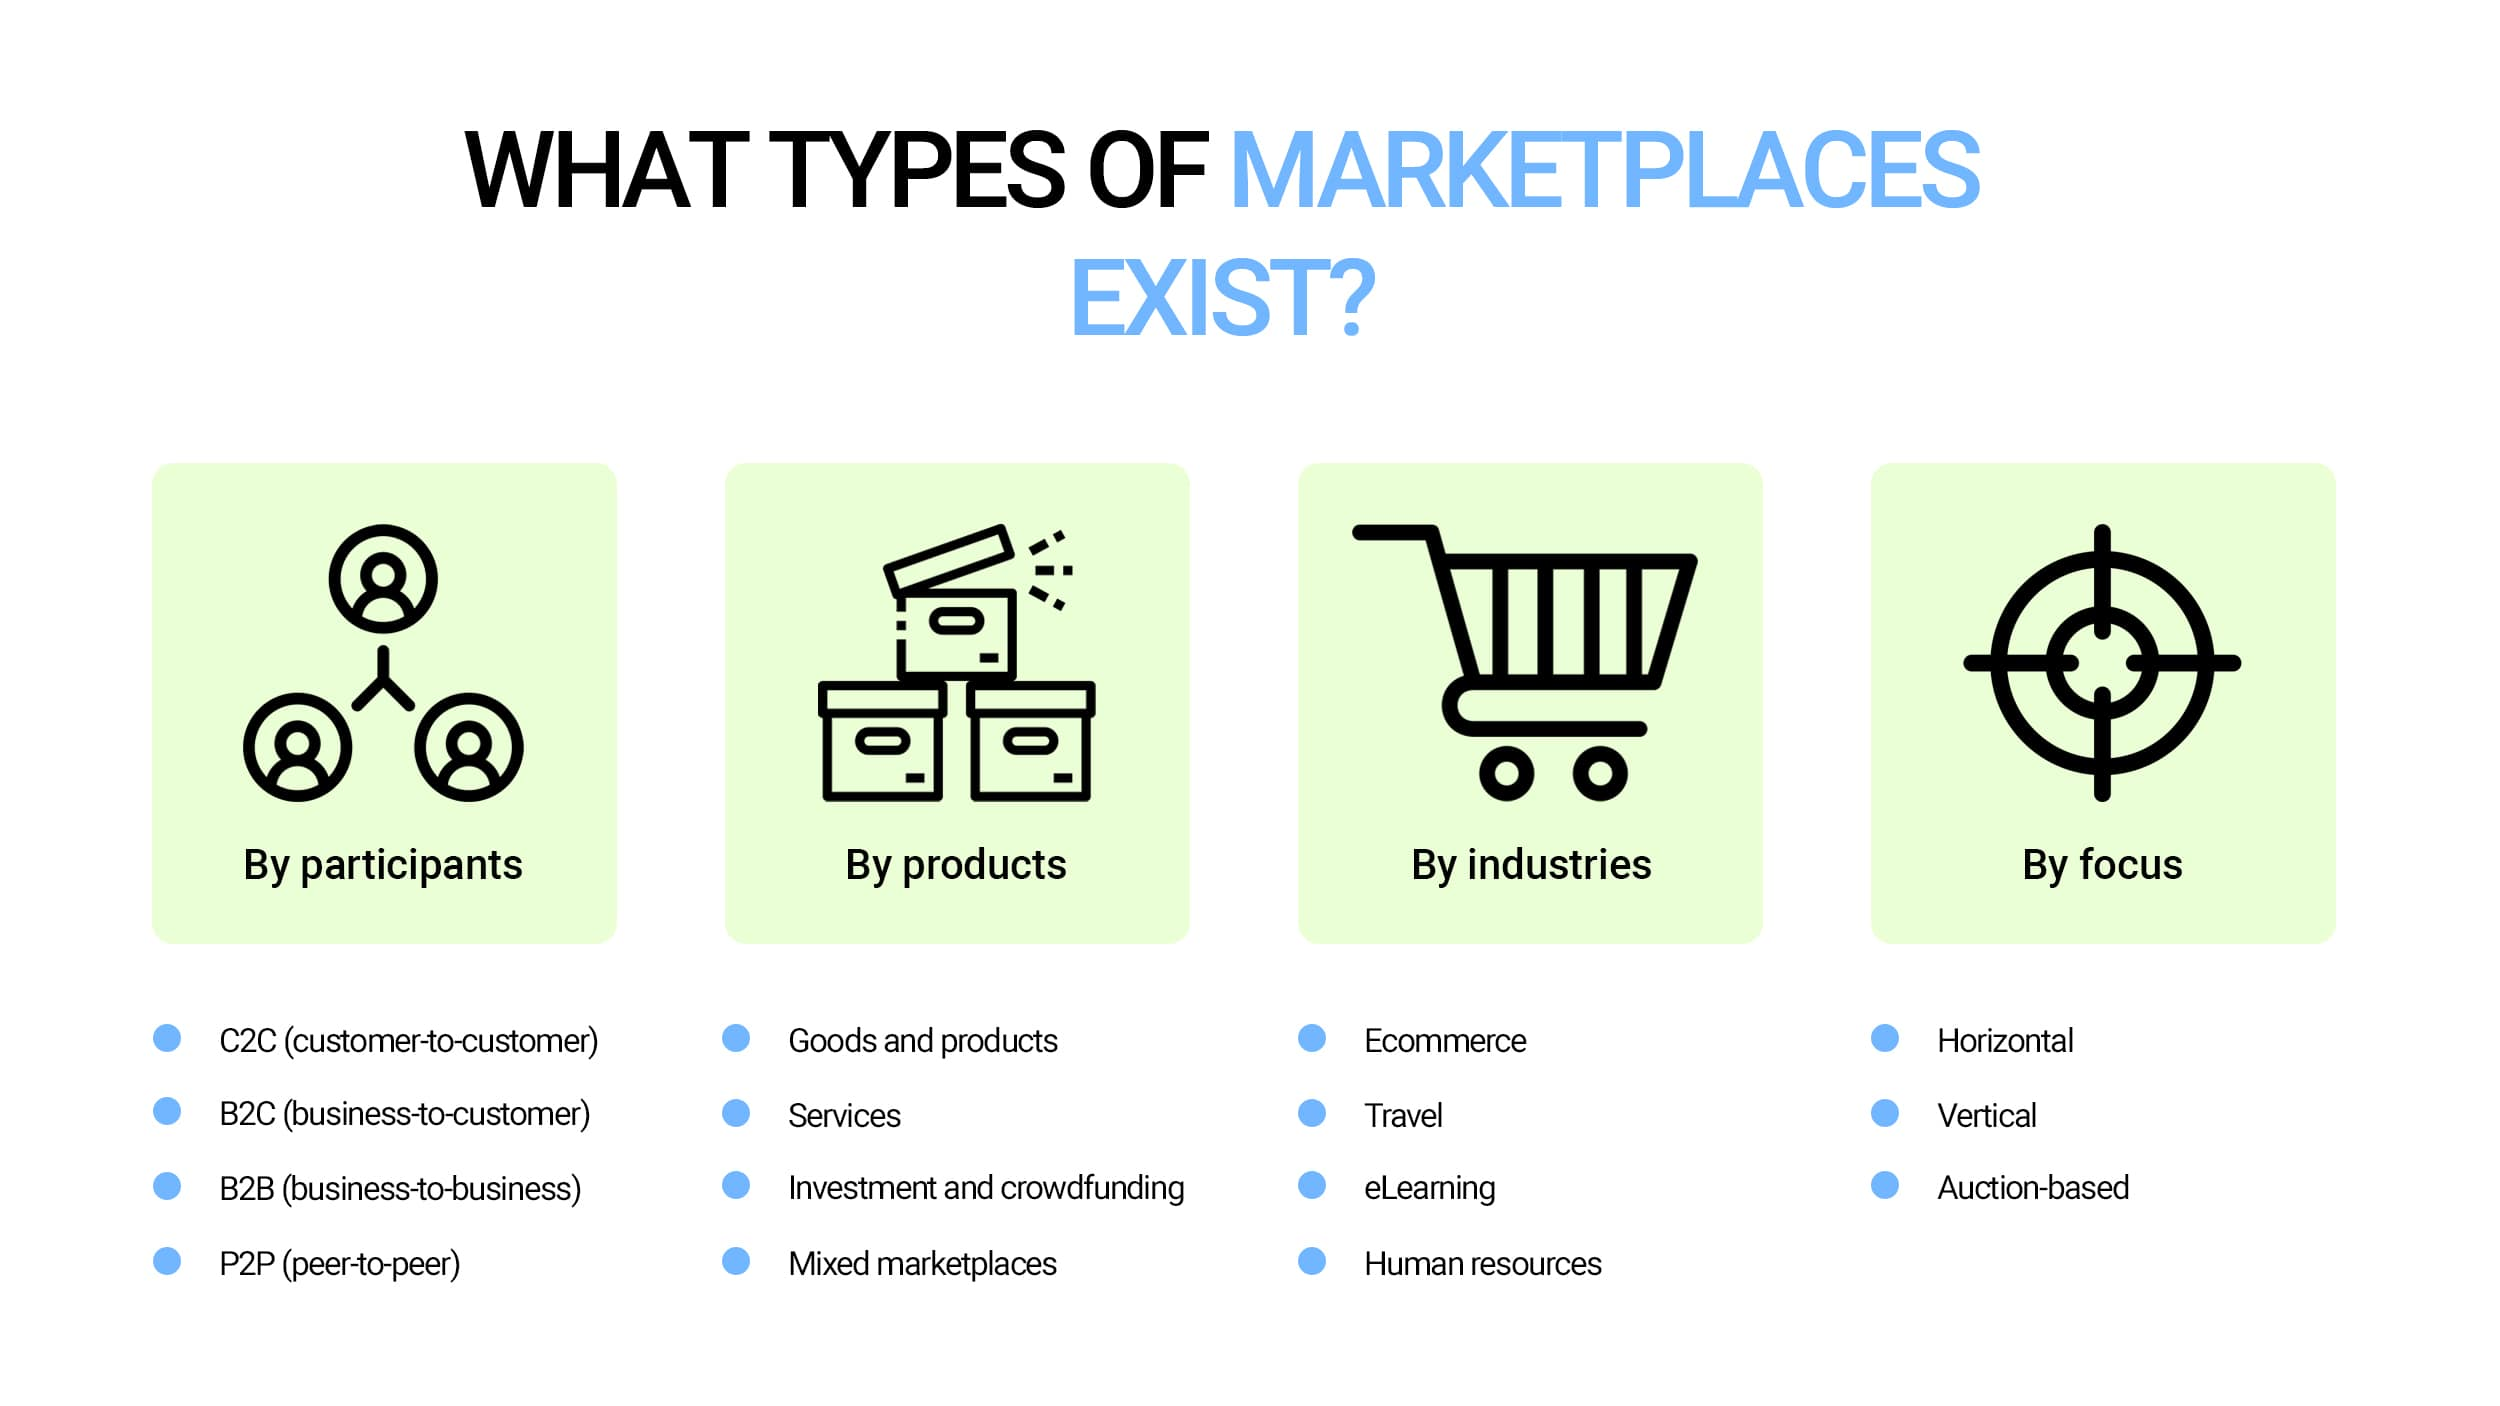 Types of marketplaces